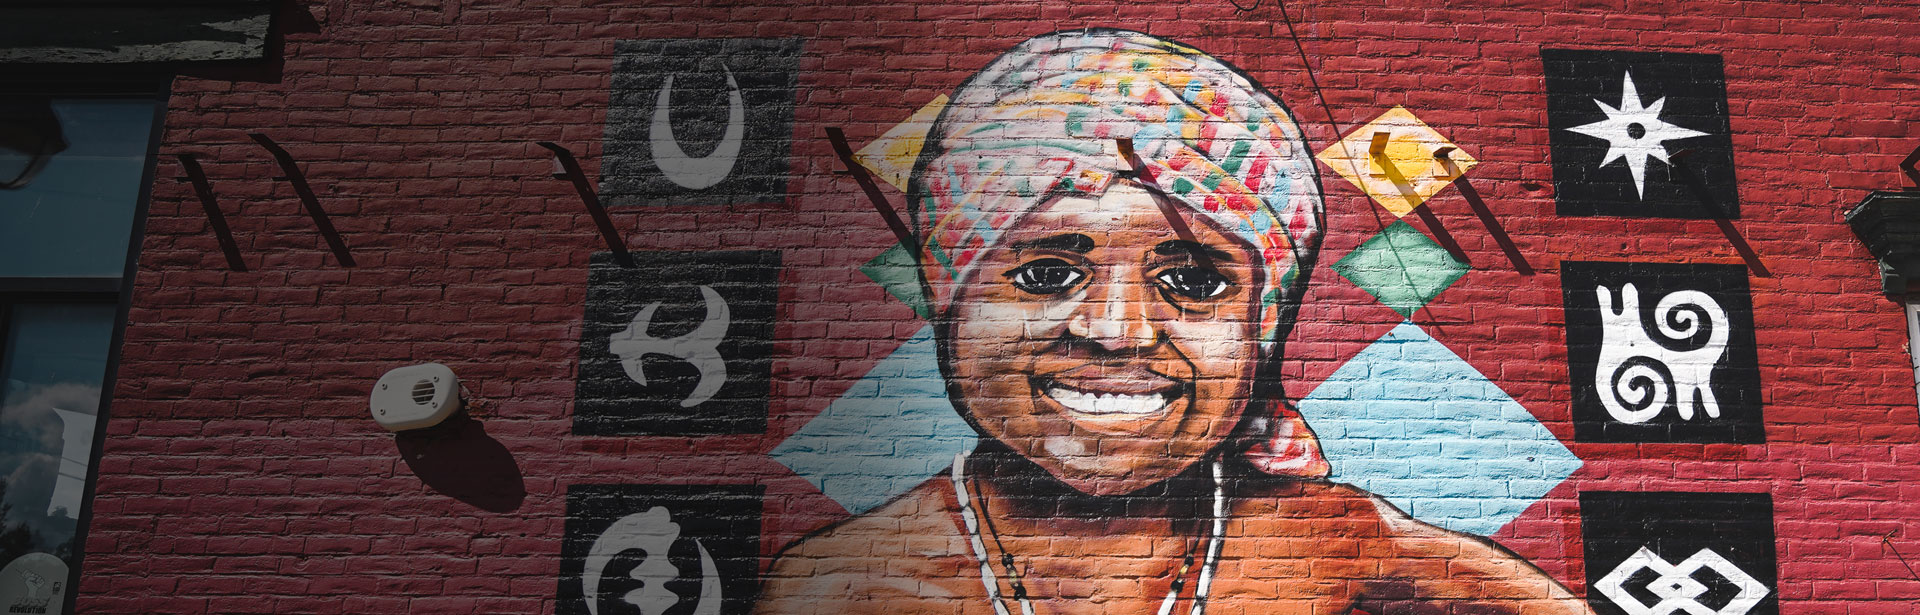 Aerial image and video courtesy of William Daugherty - Paint on brick wall on side of building of a bipoc woman smiling